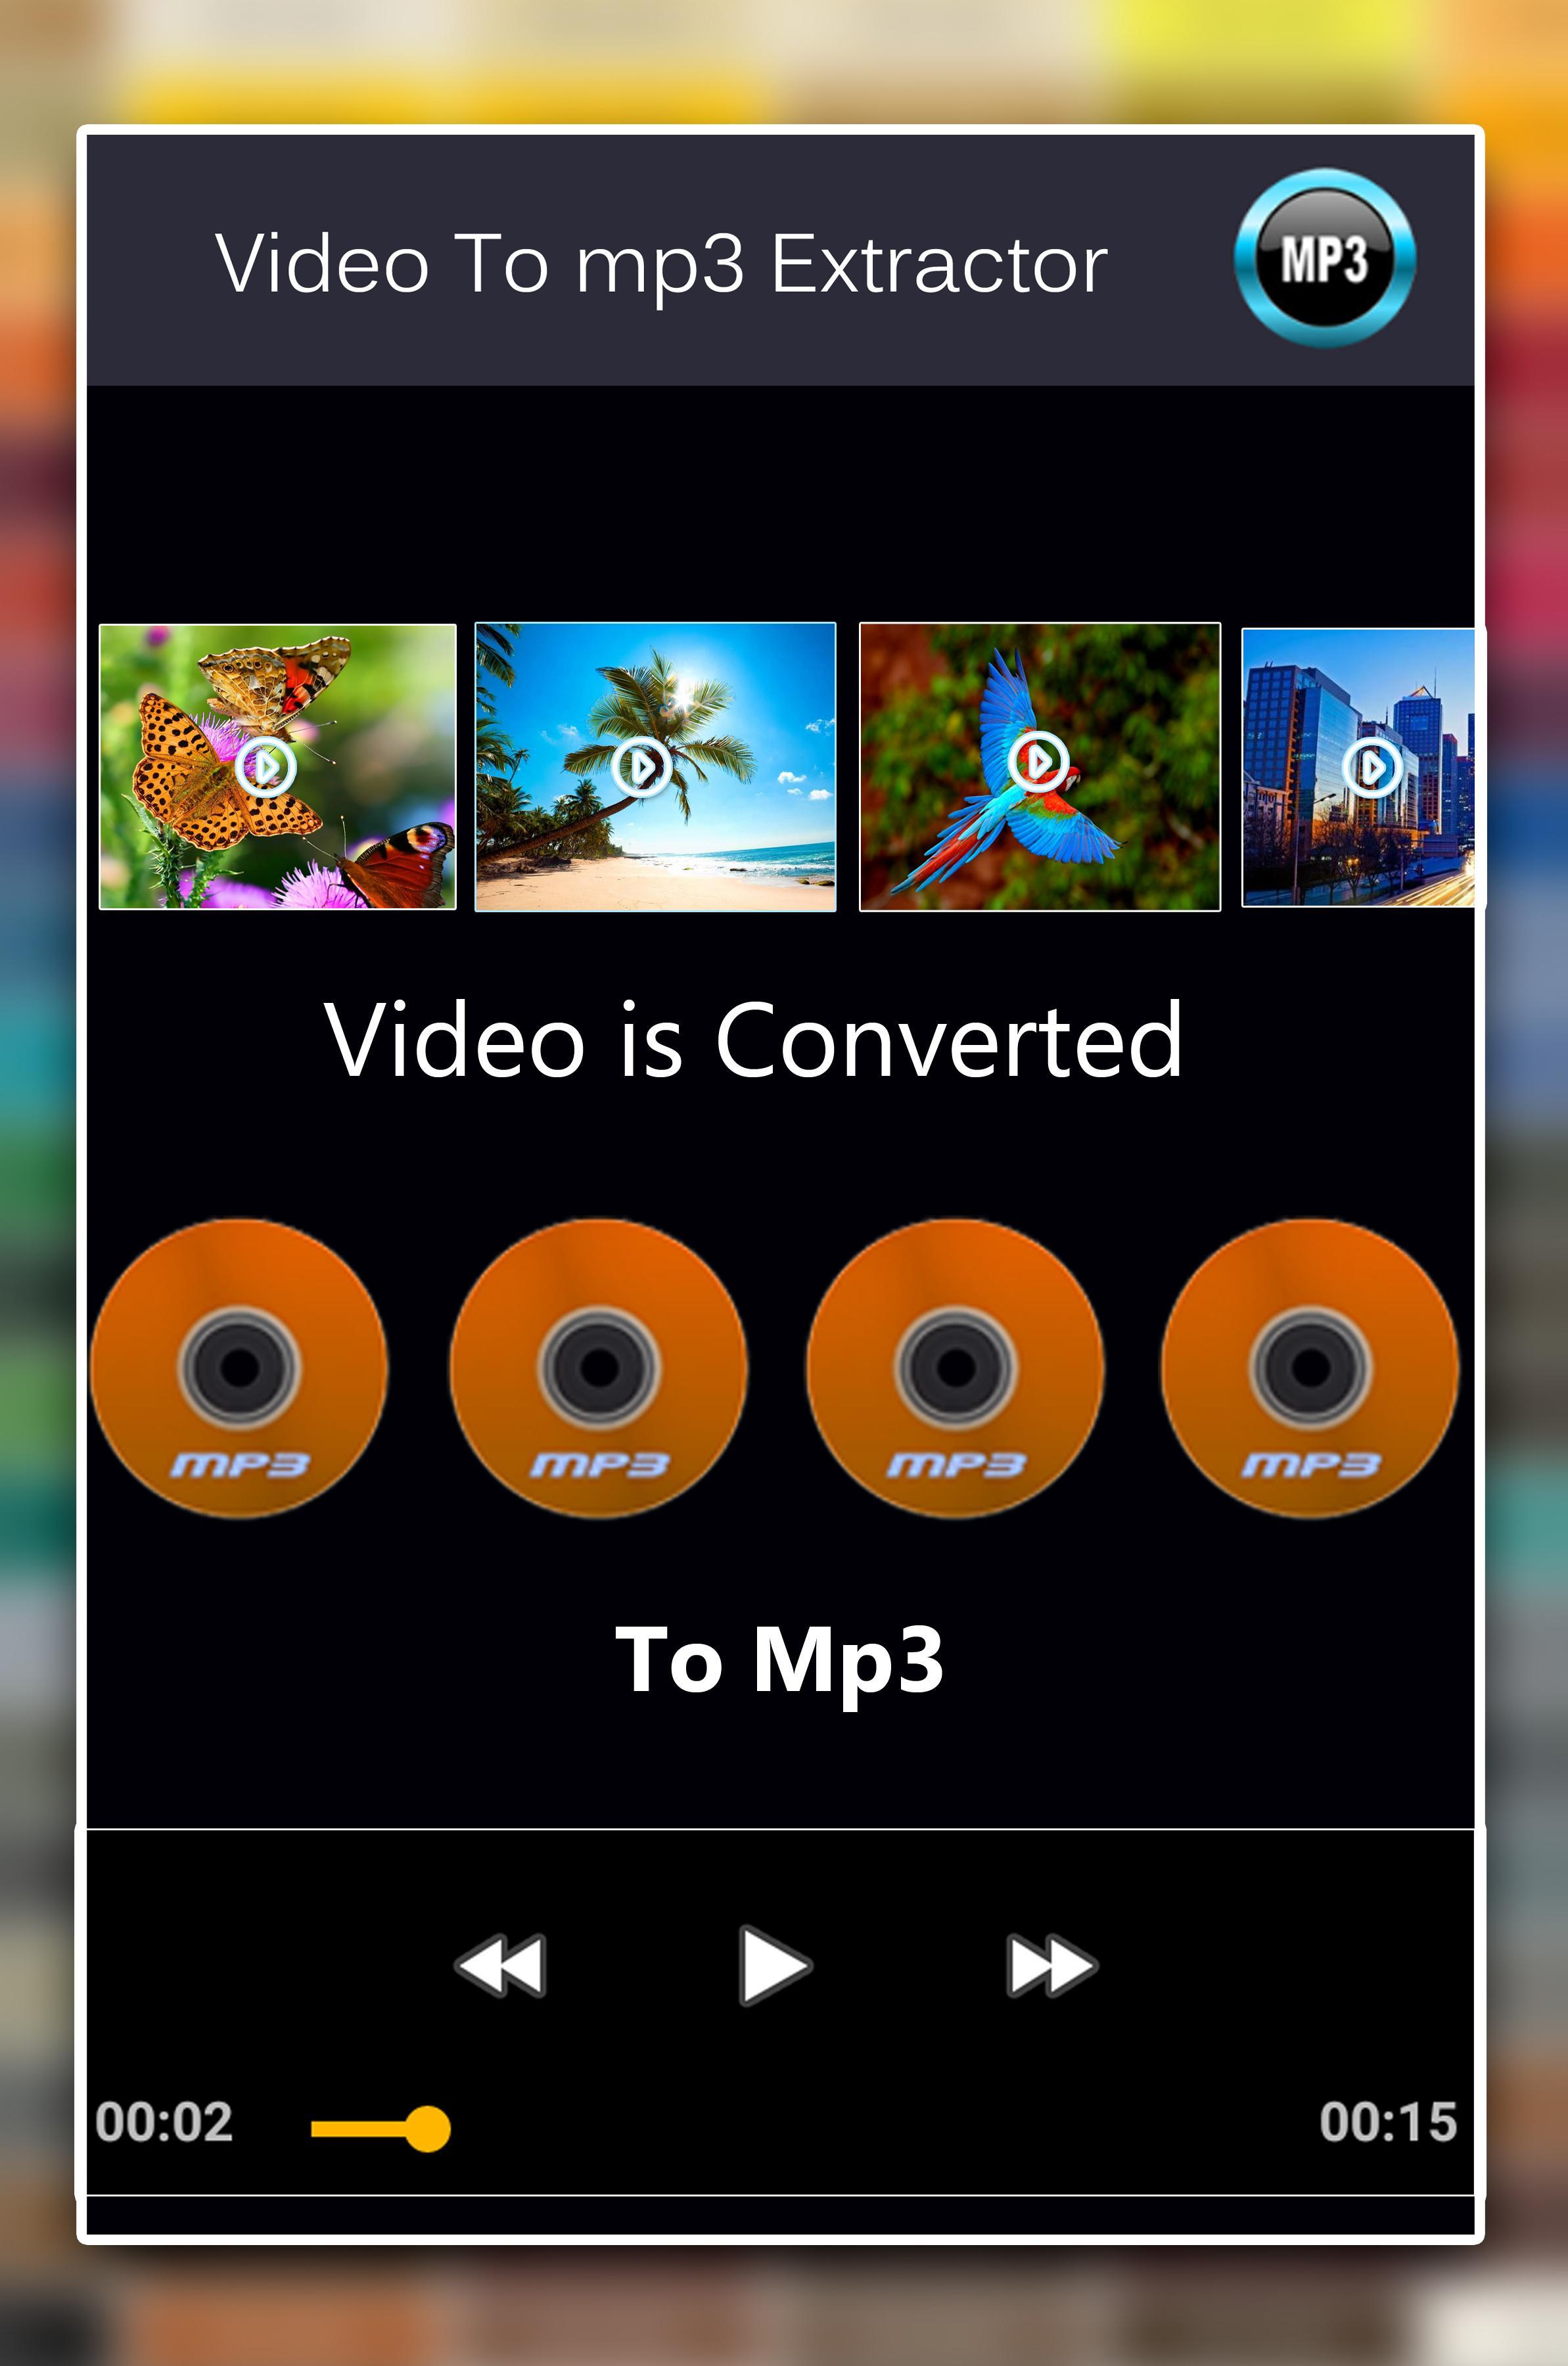 Video to Mp3 Extractor for Android - APK Download